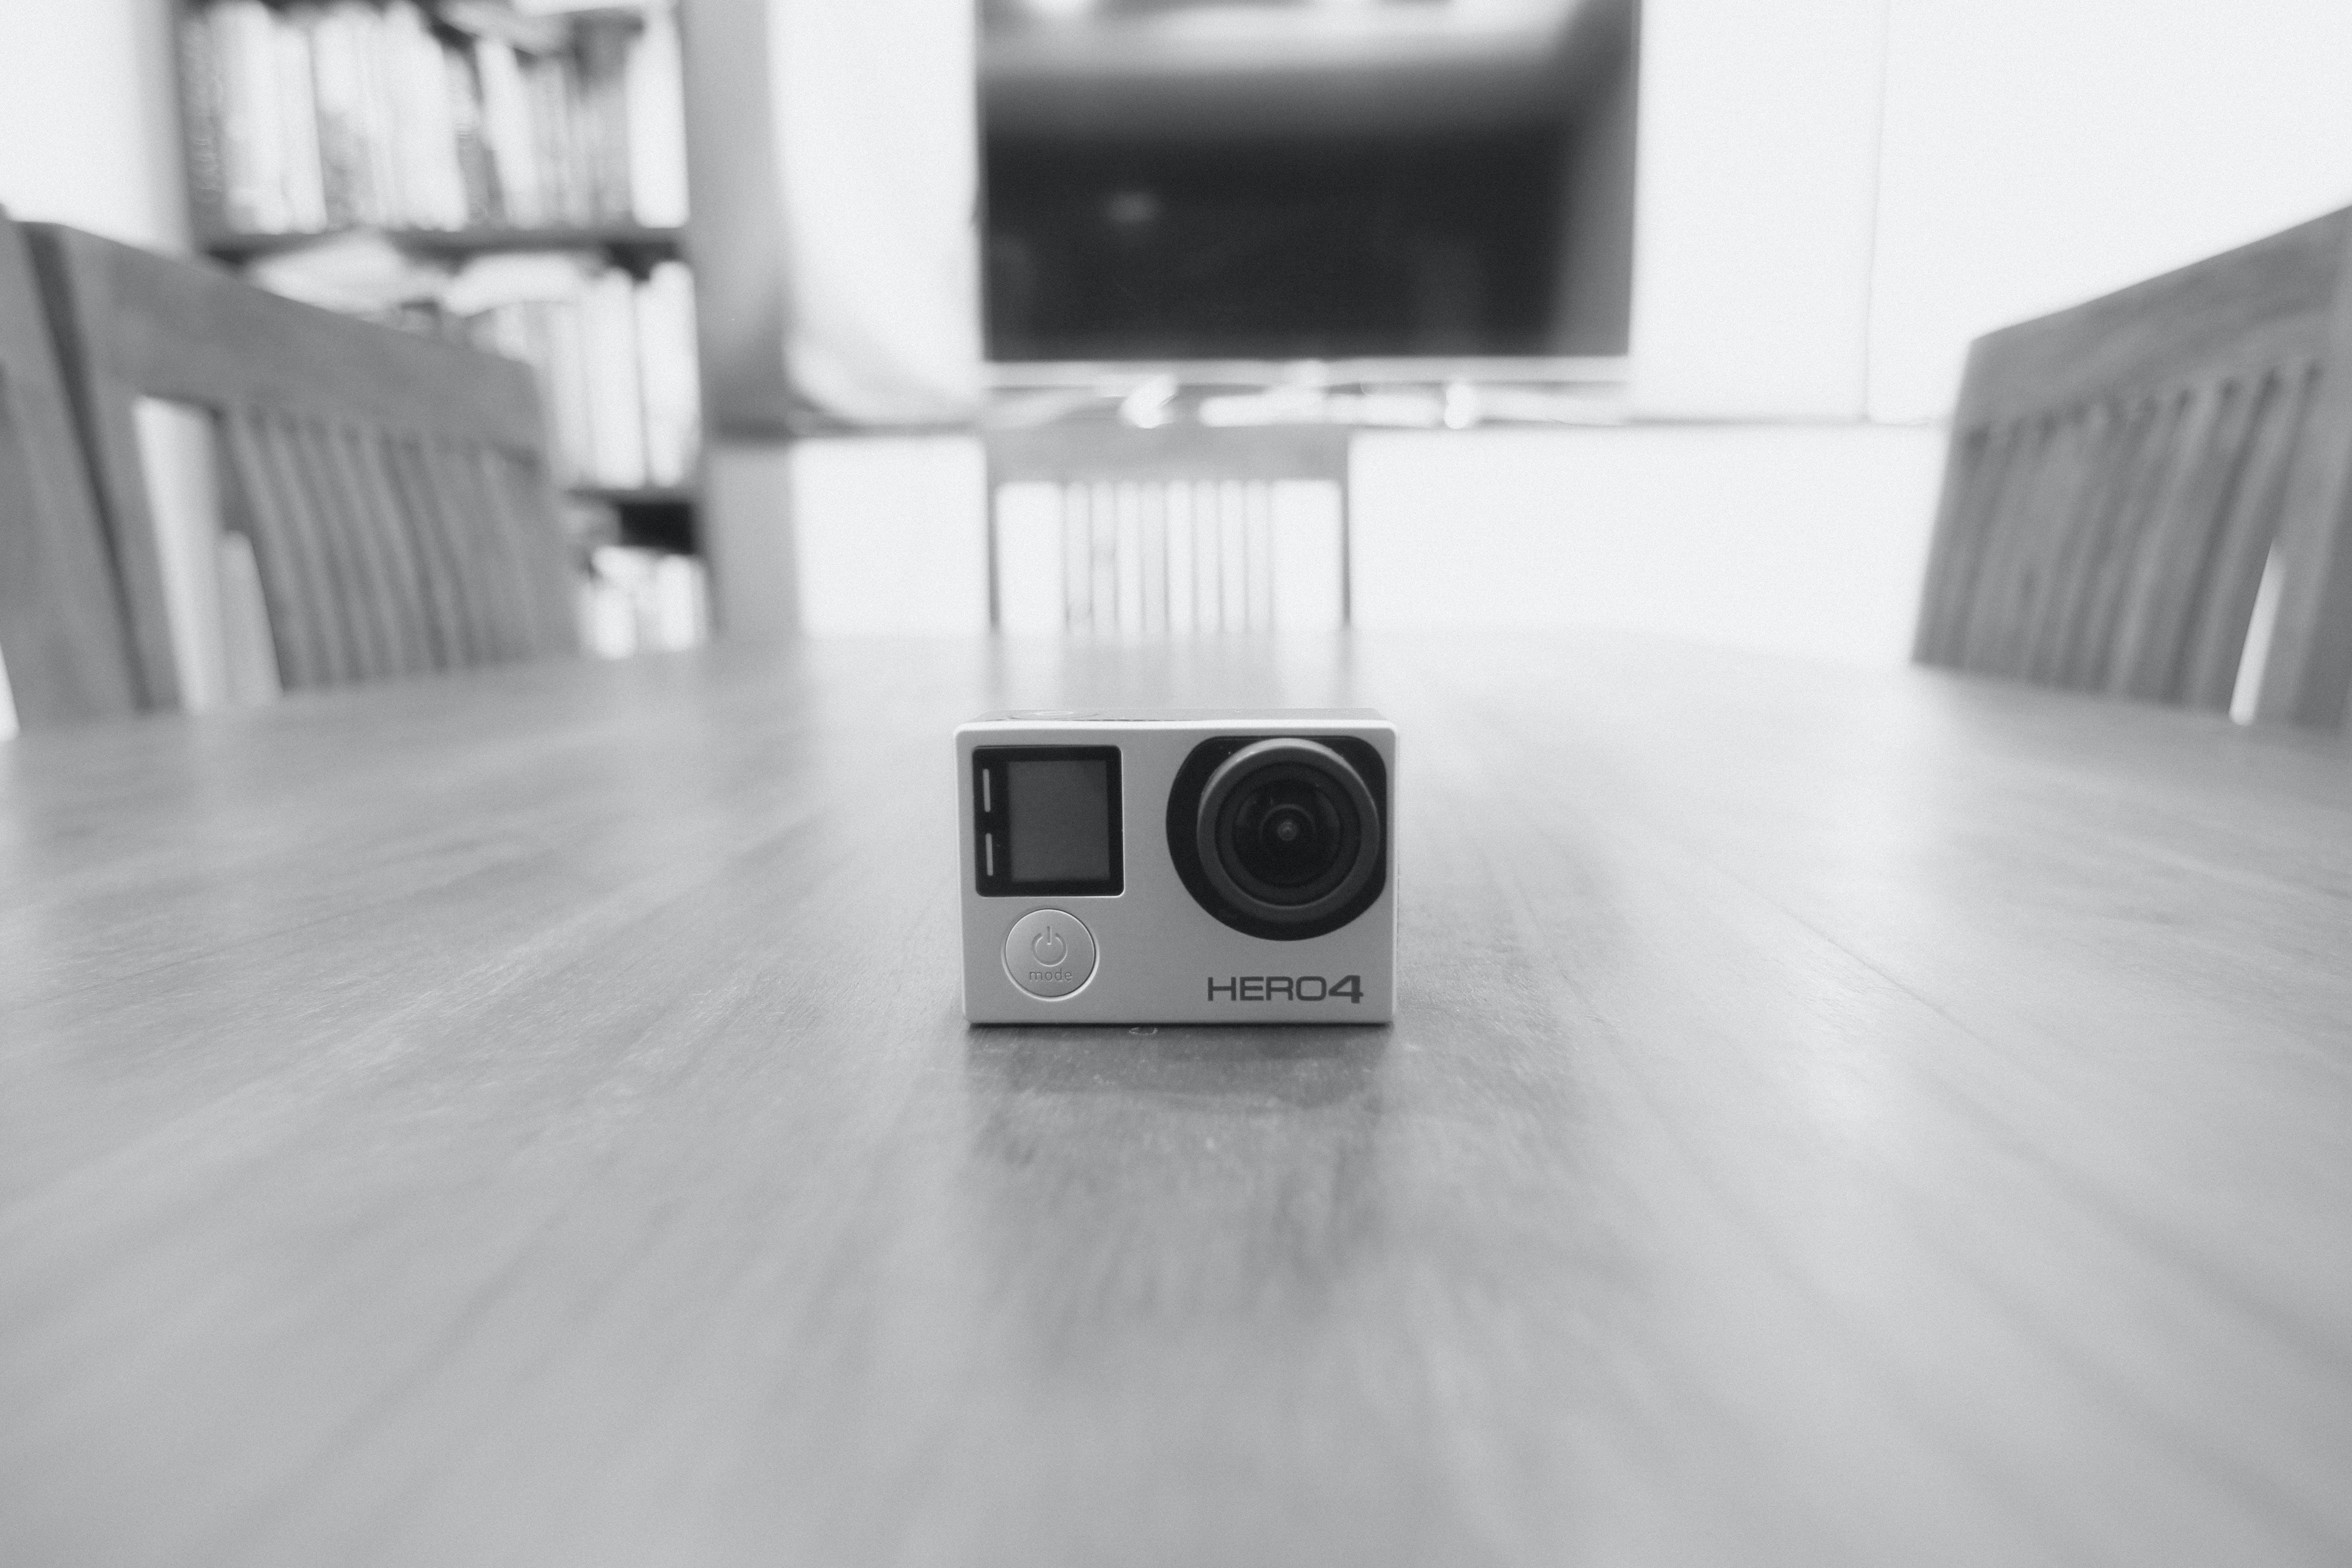 A GoPro Hero4 camera sitting on top of a kitchen table.